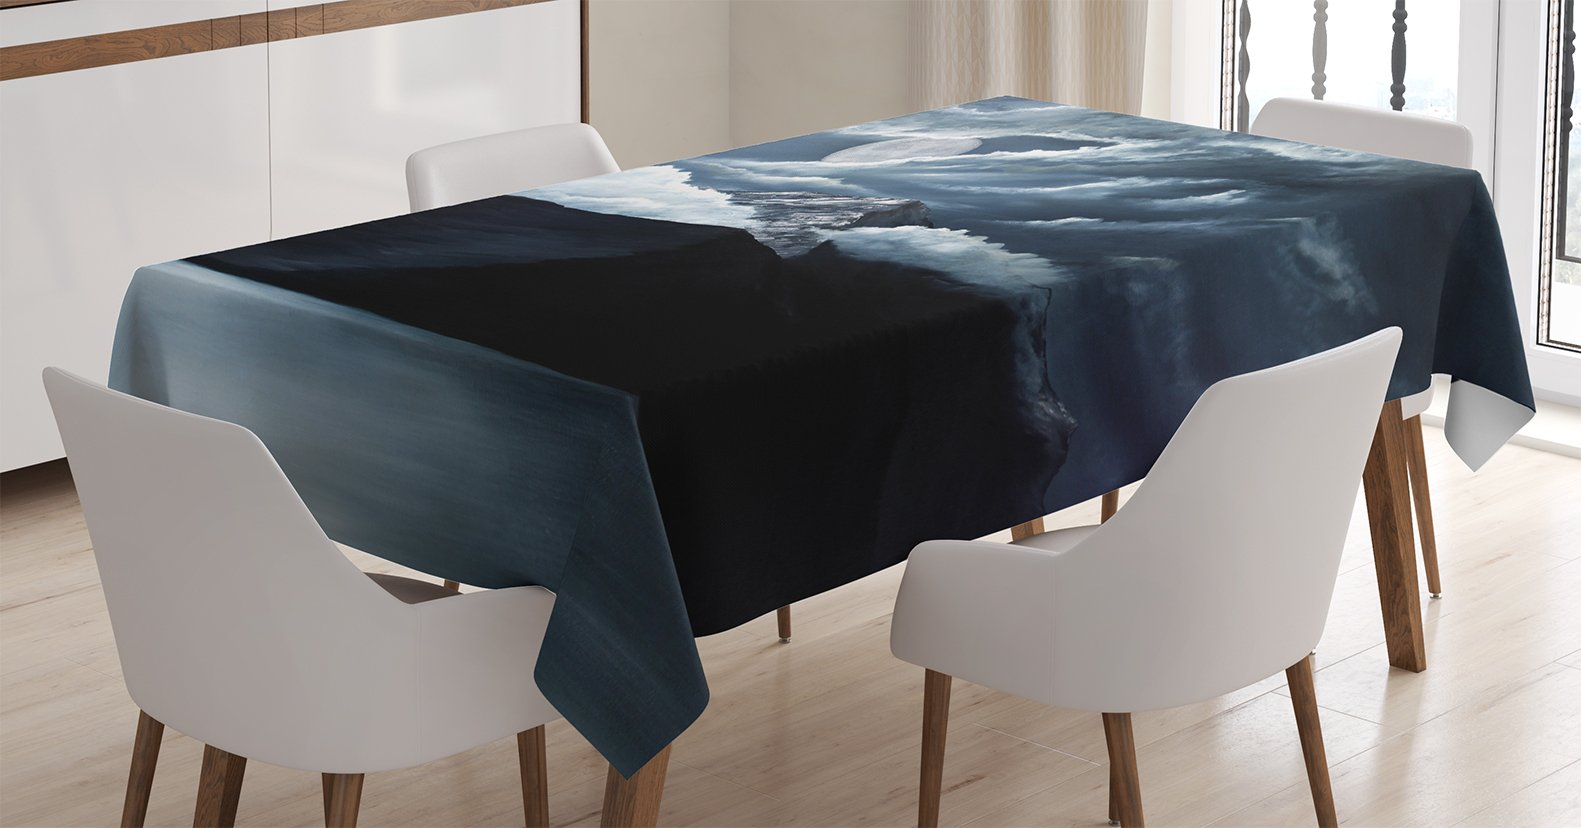 Ambesonne Americana Landscape Decor Tablecloth by, Moon Over Lake and Hills with Dark Storm Clouds Twilight Dawn at Night, Dining Room Kitchen Rectangular Table Cover, Grey 71y txh0yHL